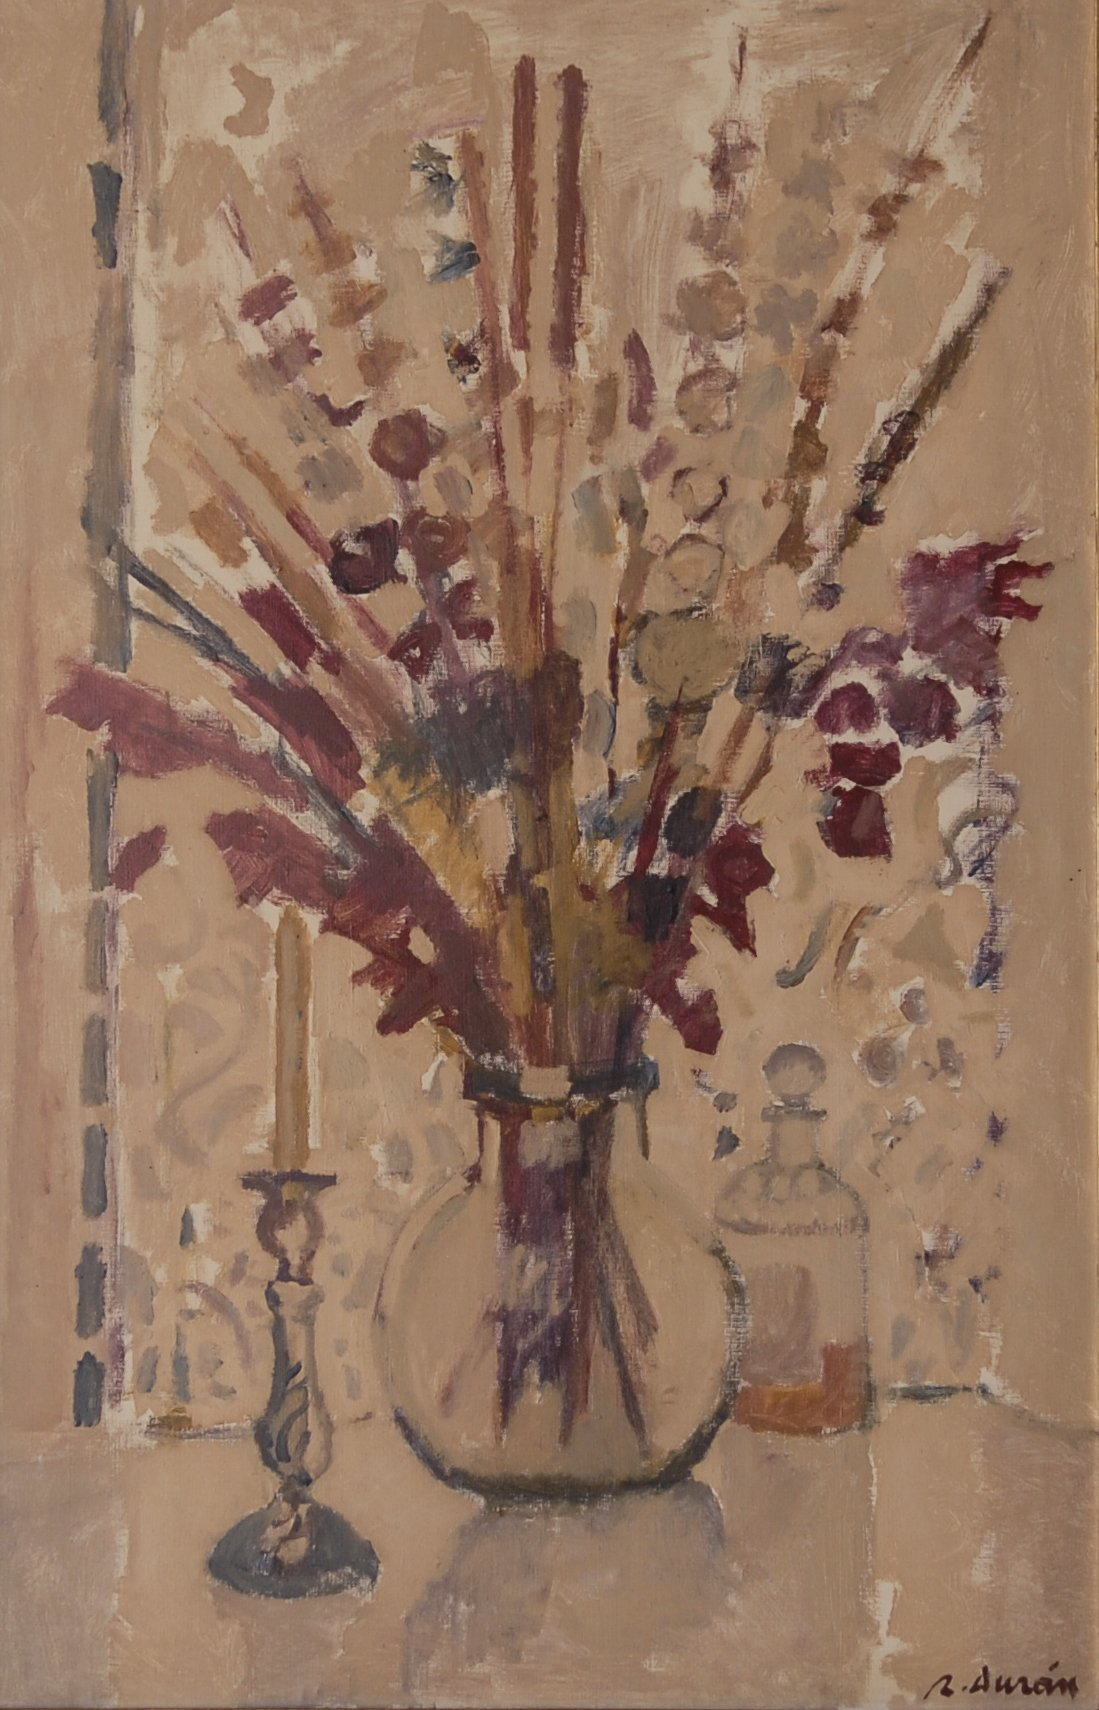 Flowers In A Vase by Rafael Duran